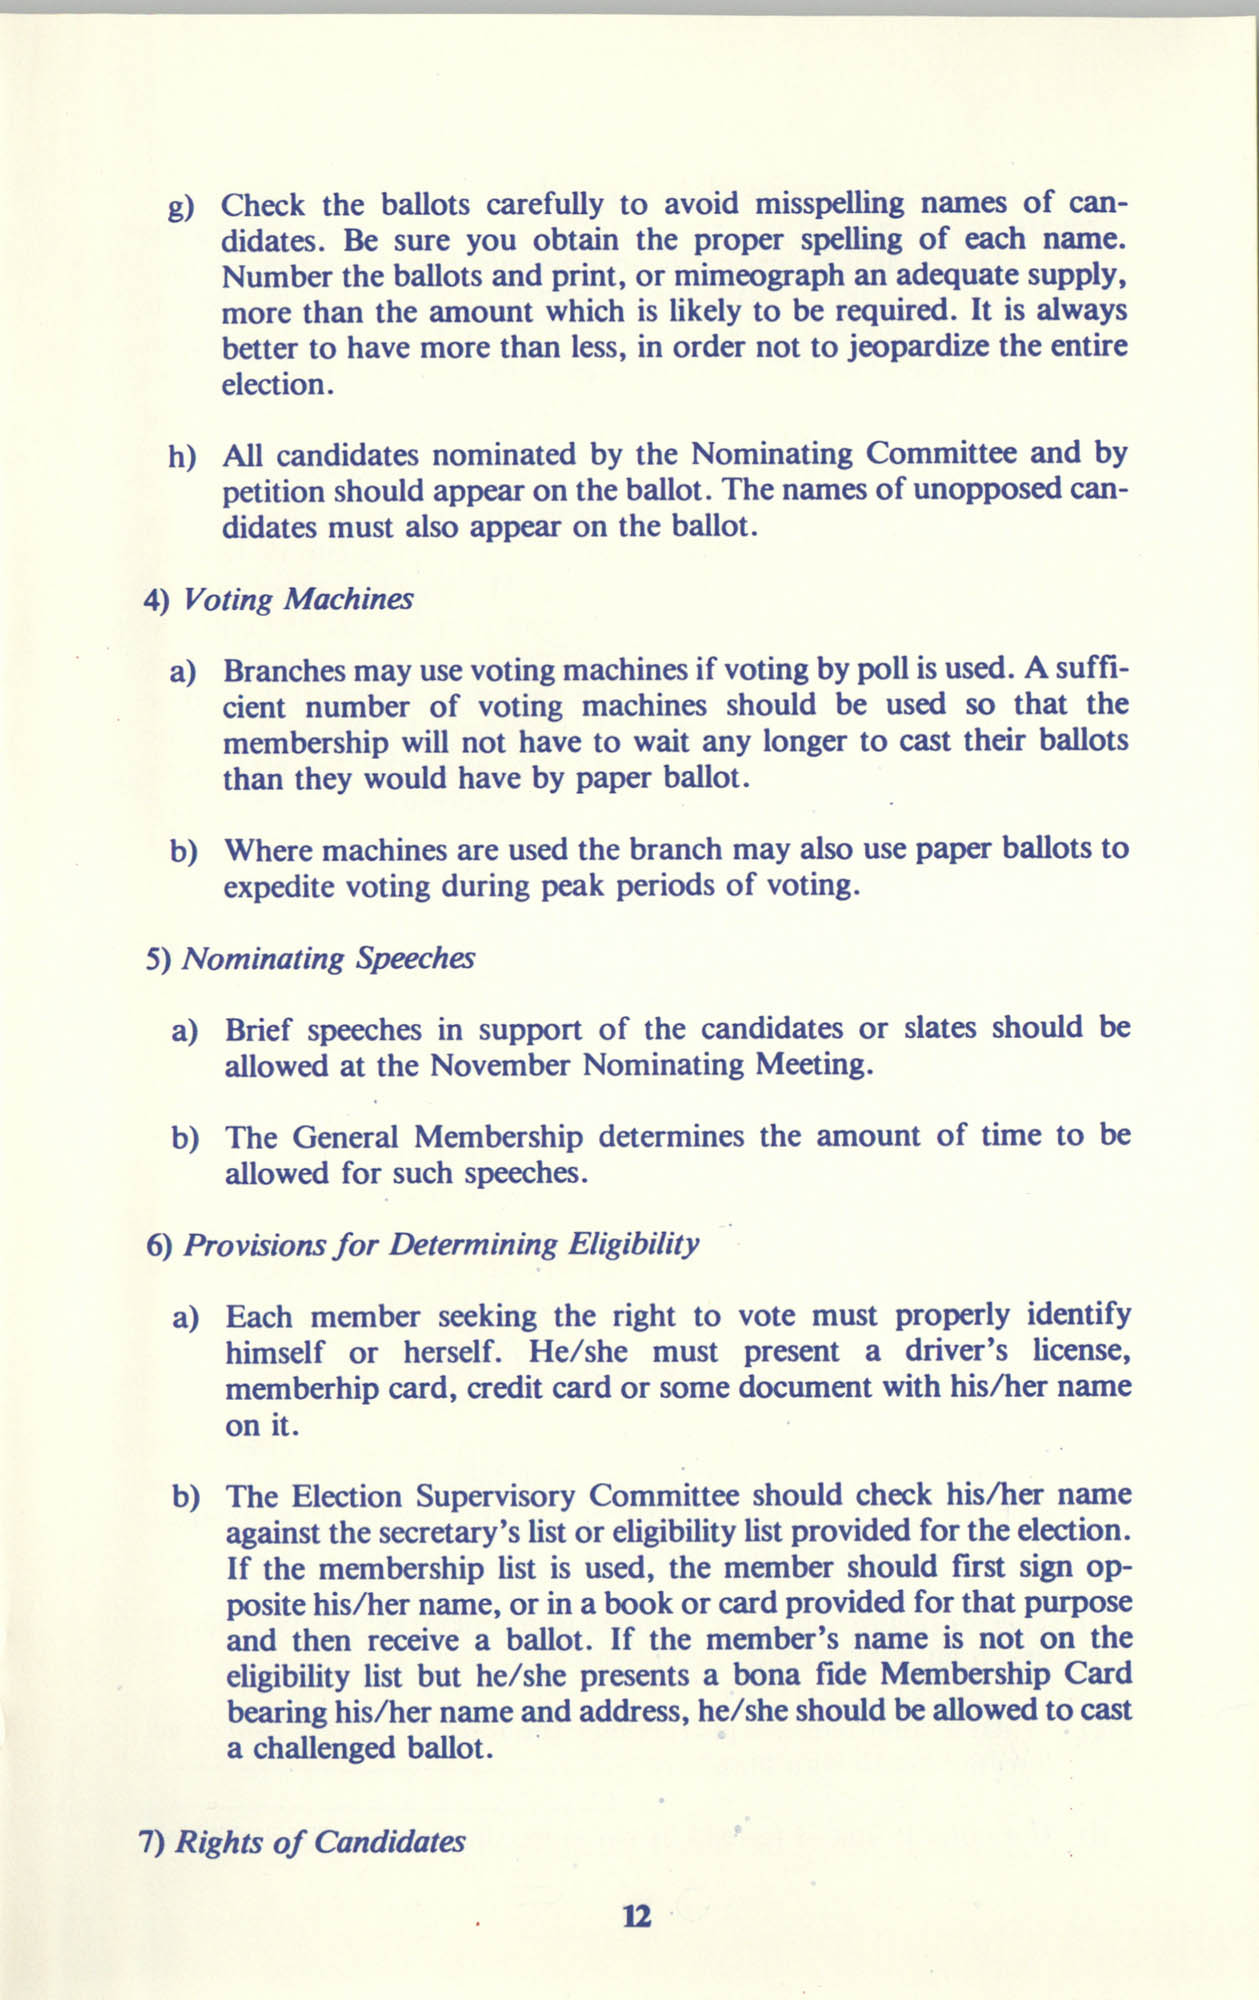 Manual on Branch Election Procedure, Page 12